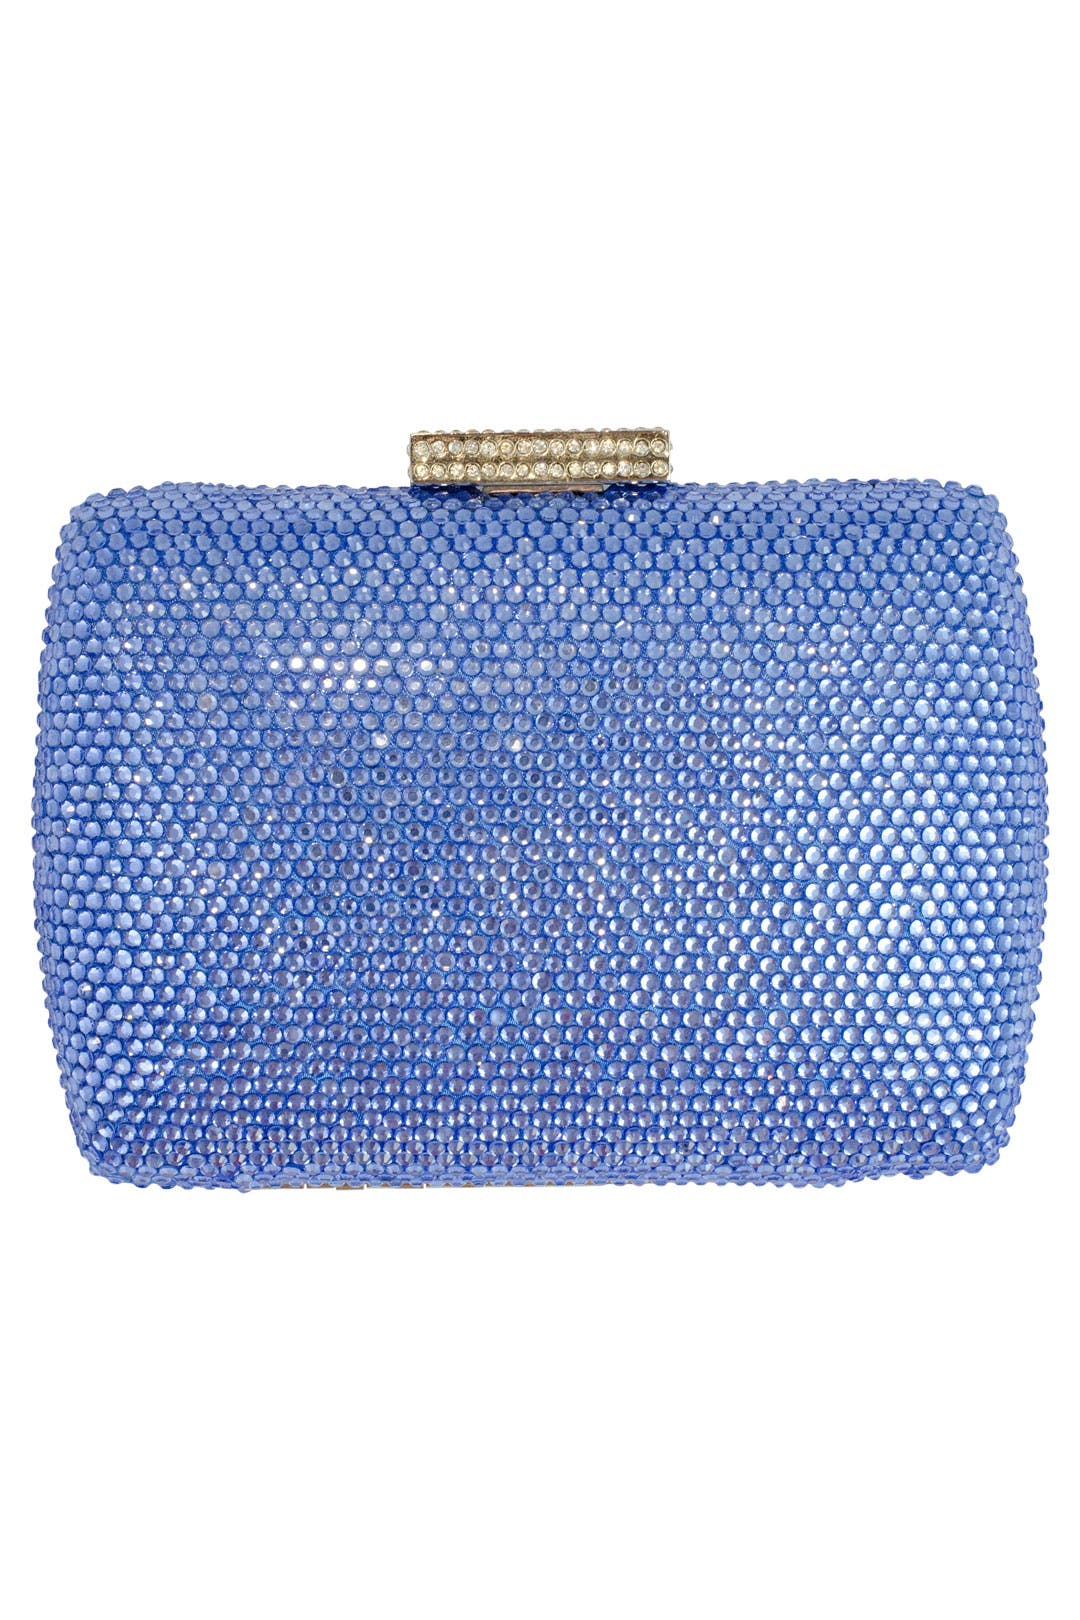 Long Island Blue Minaudiere by Serpui Marie